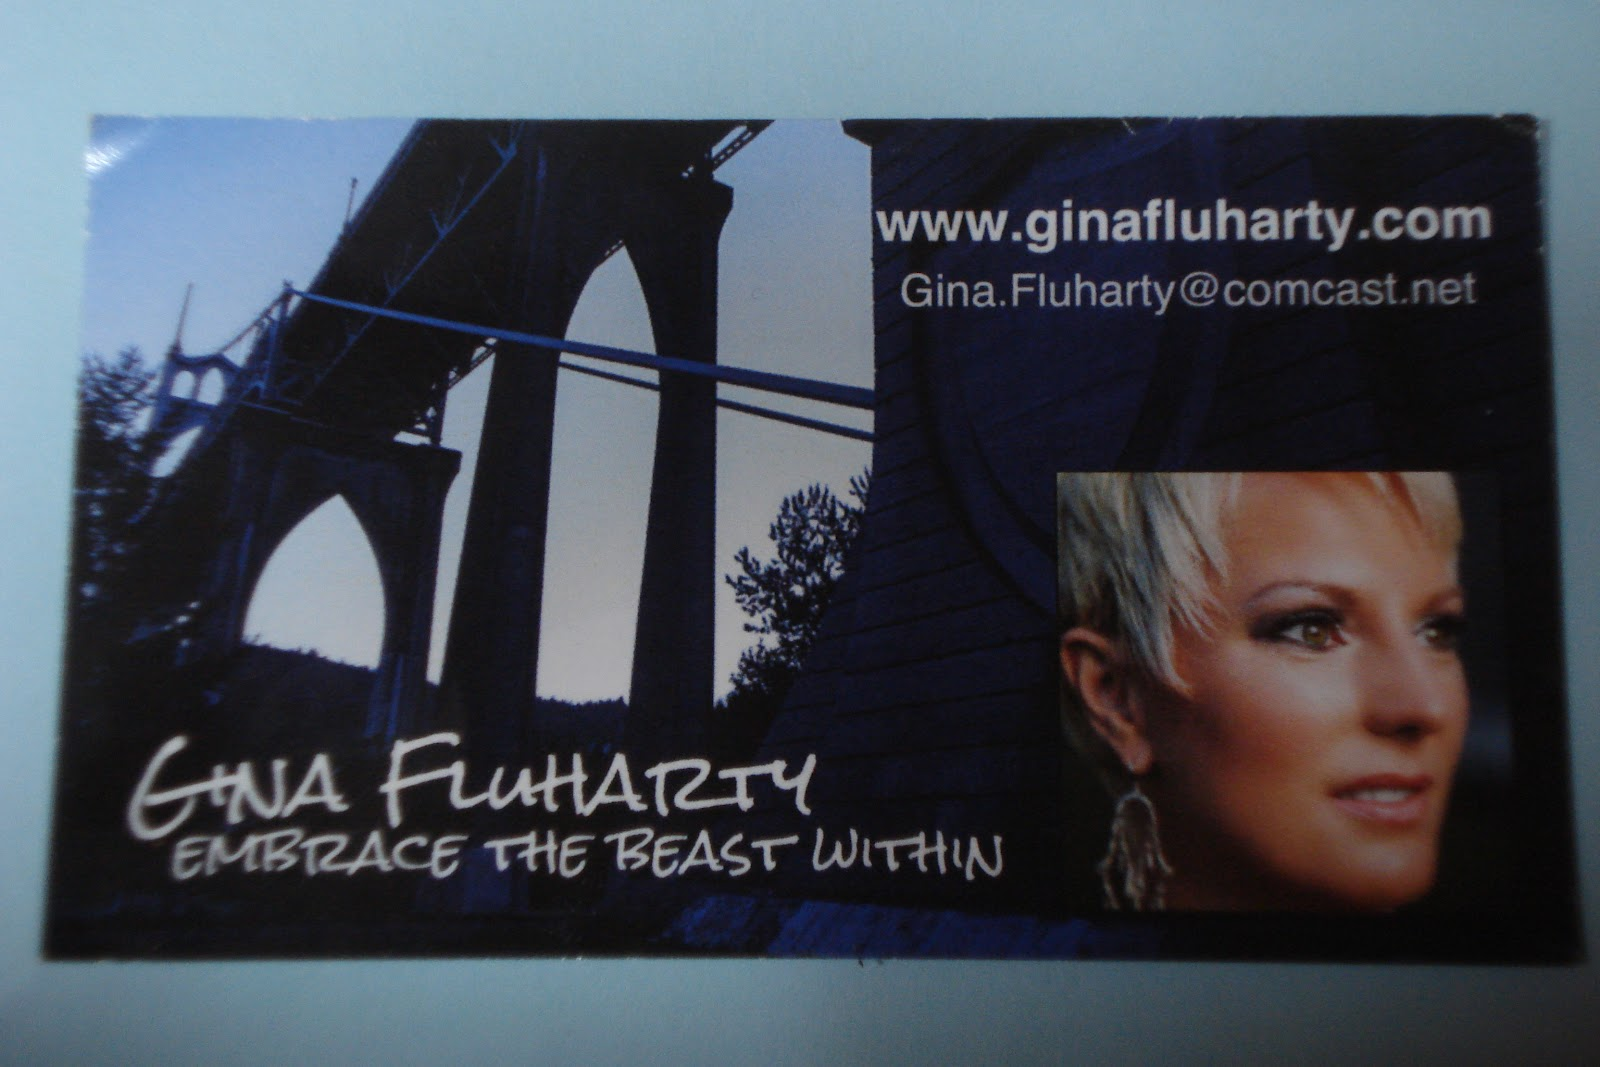 author marketing 101: mirror your business cards and website